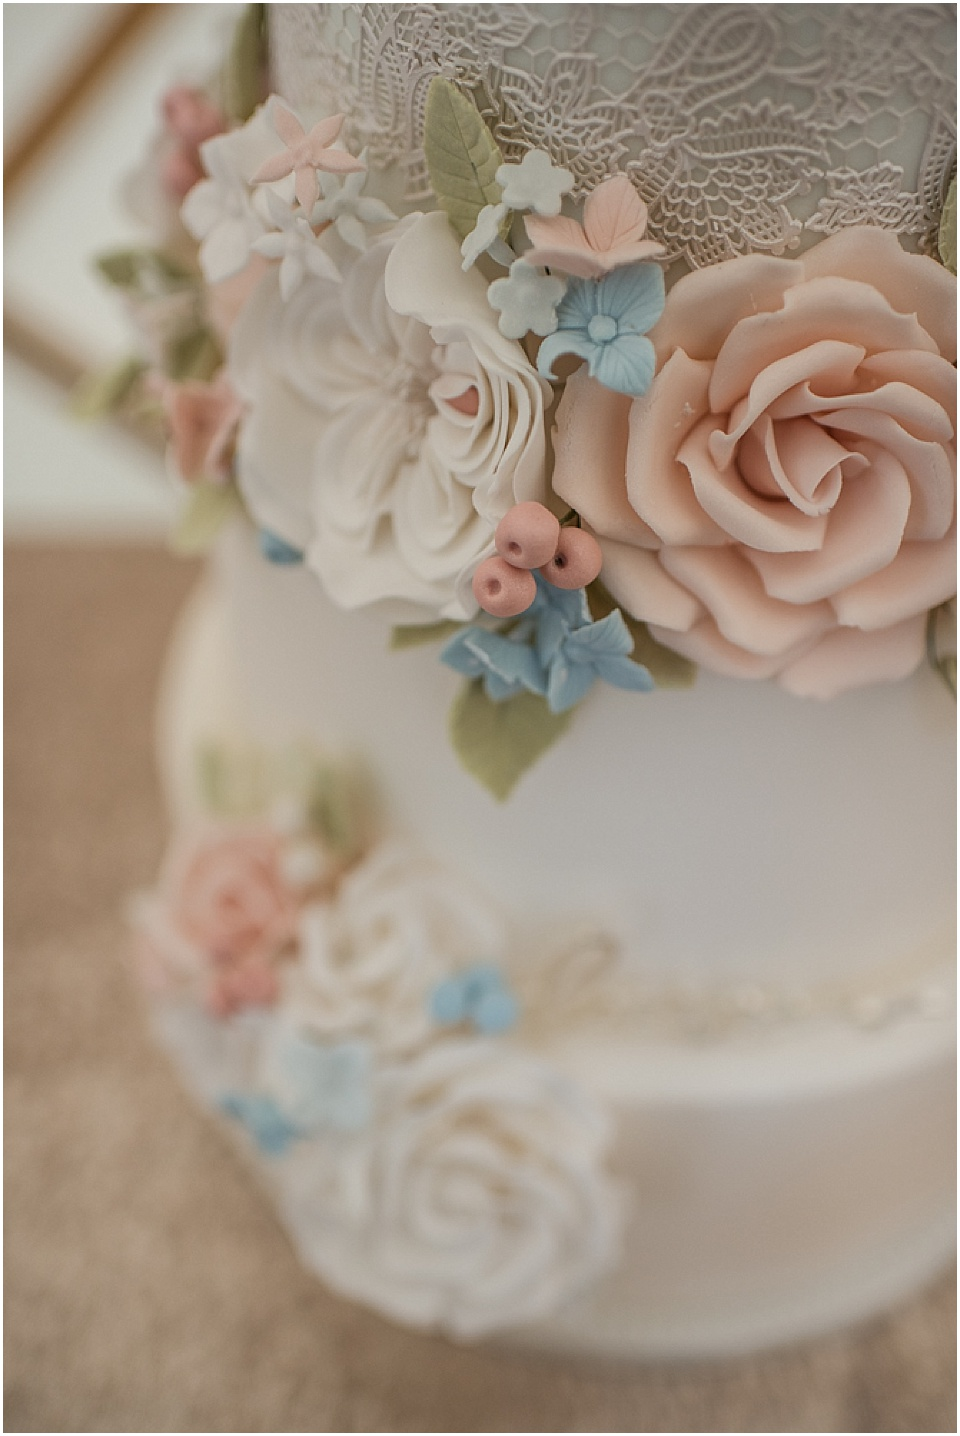 Rose-Quartz-Styled-Shoot-Jane-Beadnell-Photography-www.nubride.com_0392.jpg